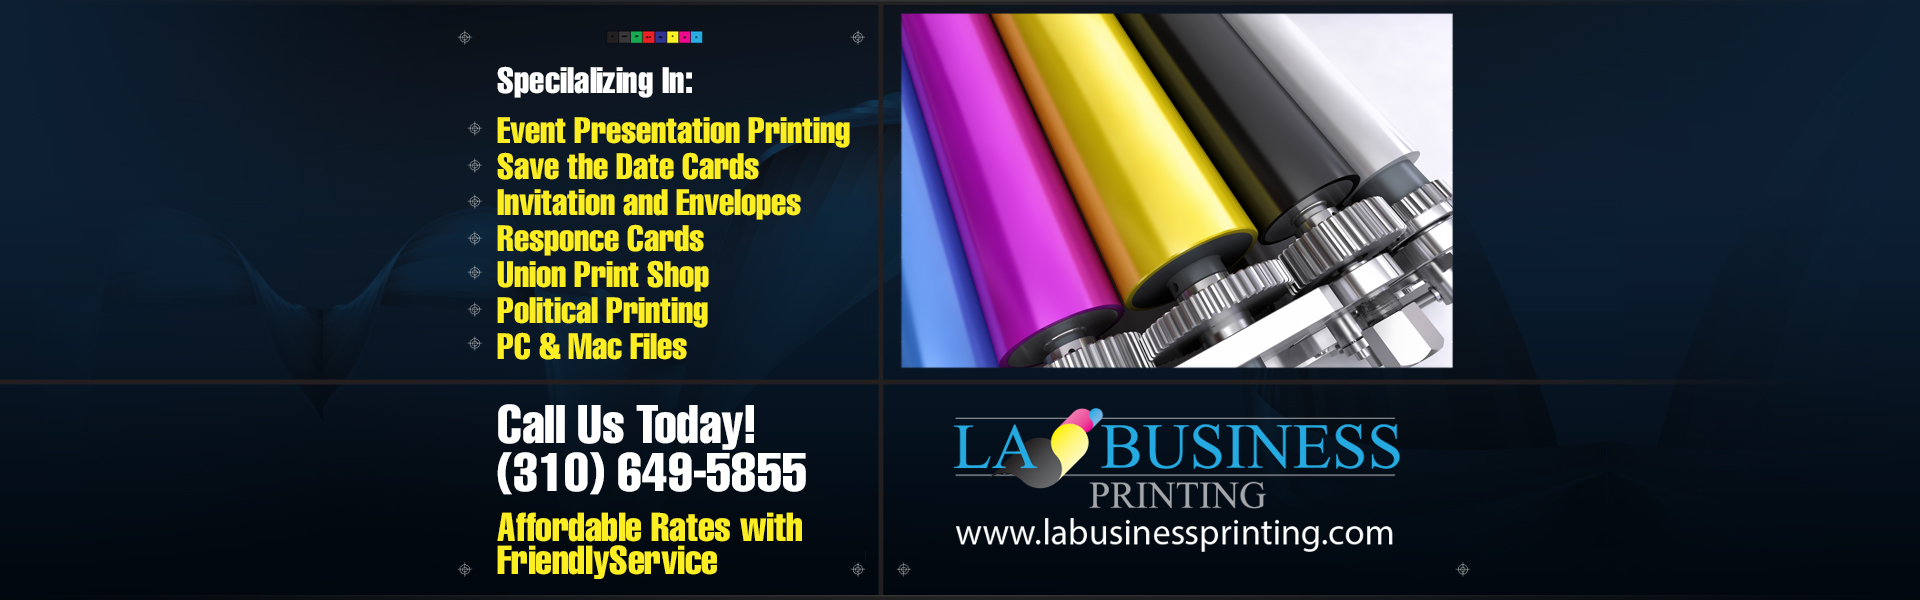 La business printing a full service california based printing welcome to la business printing reheart Gallery